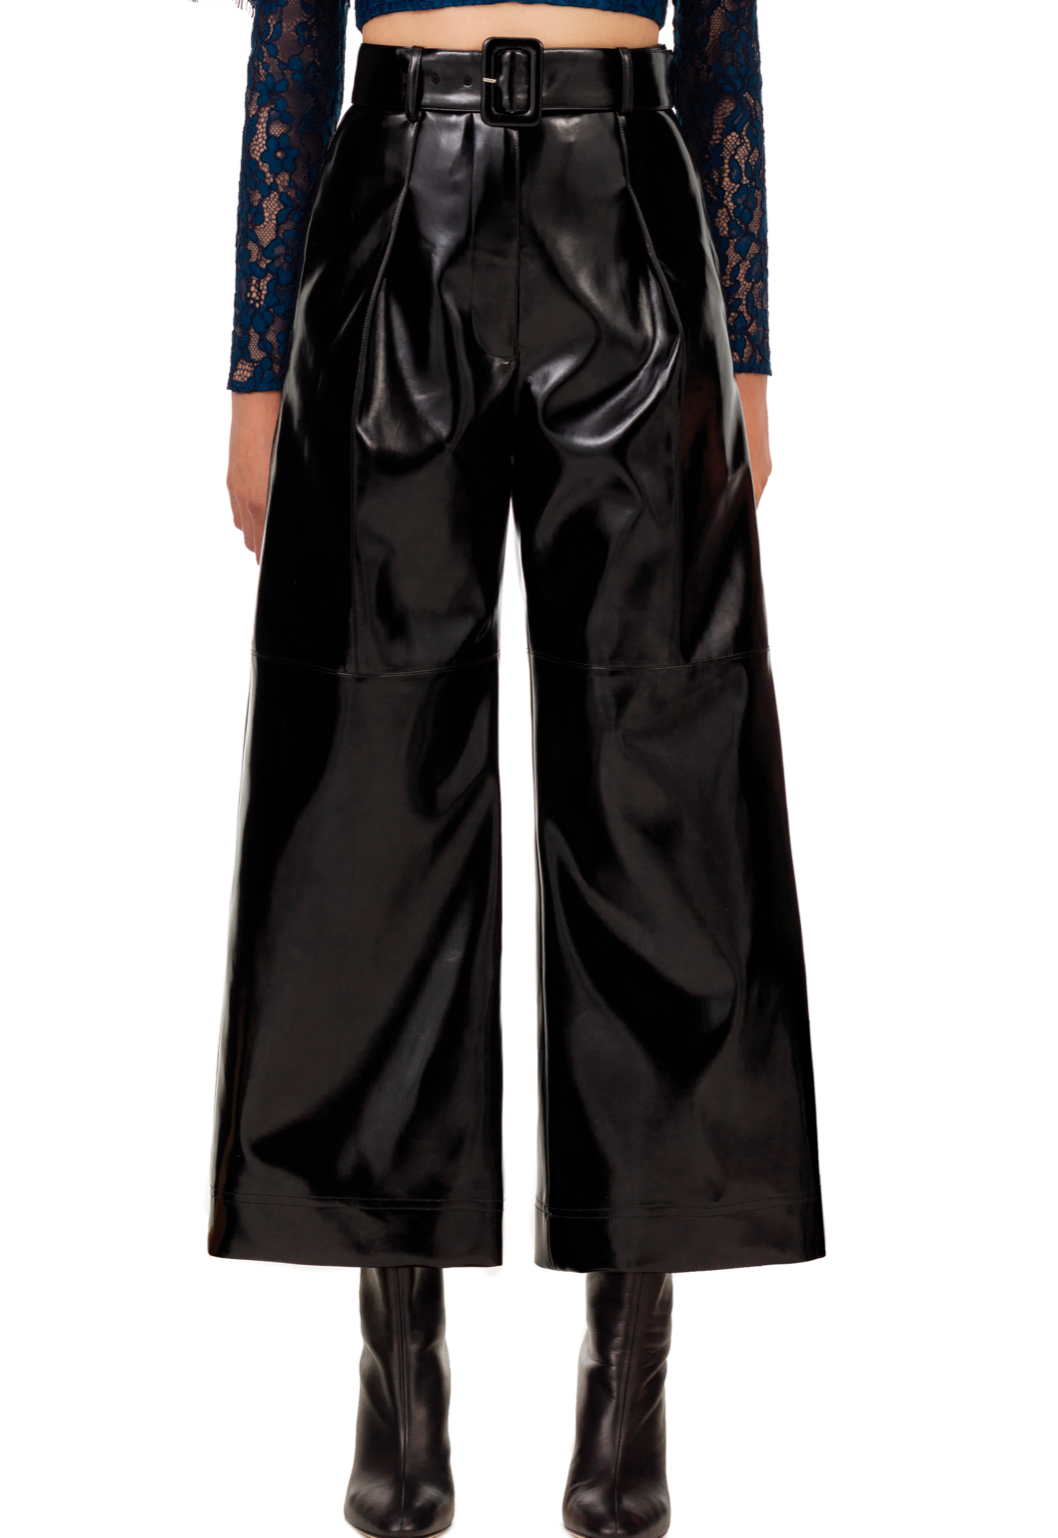 149L BLACK TAILORED FAUX PATENT LEATHER CULOTTES